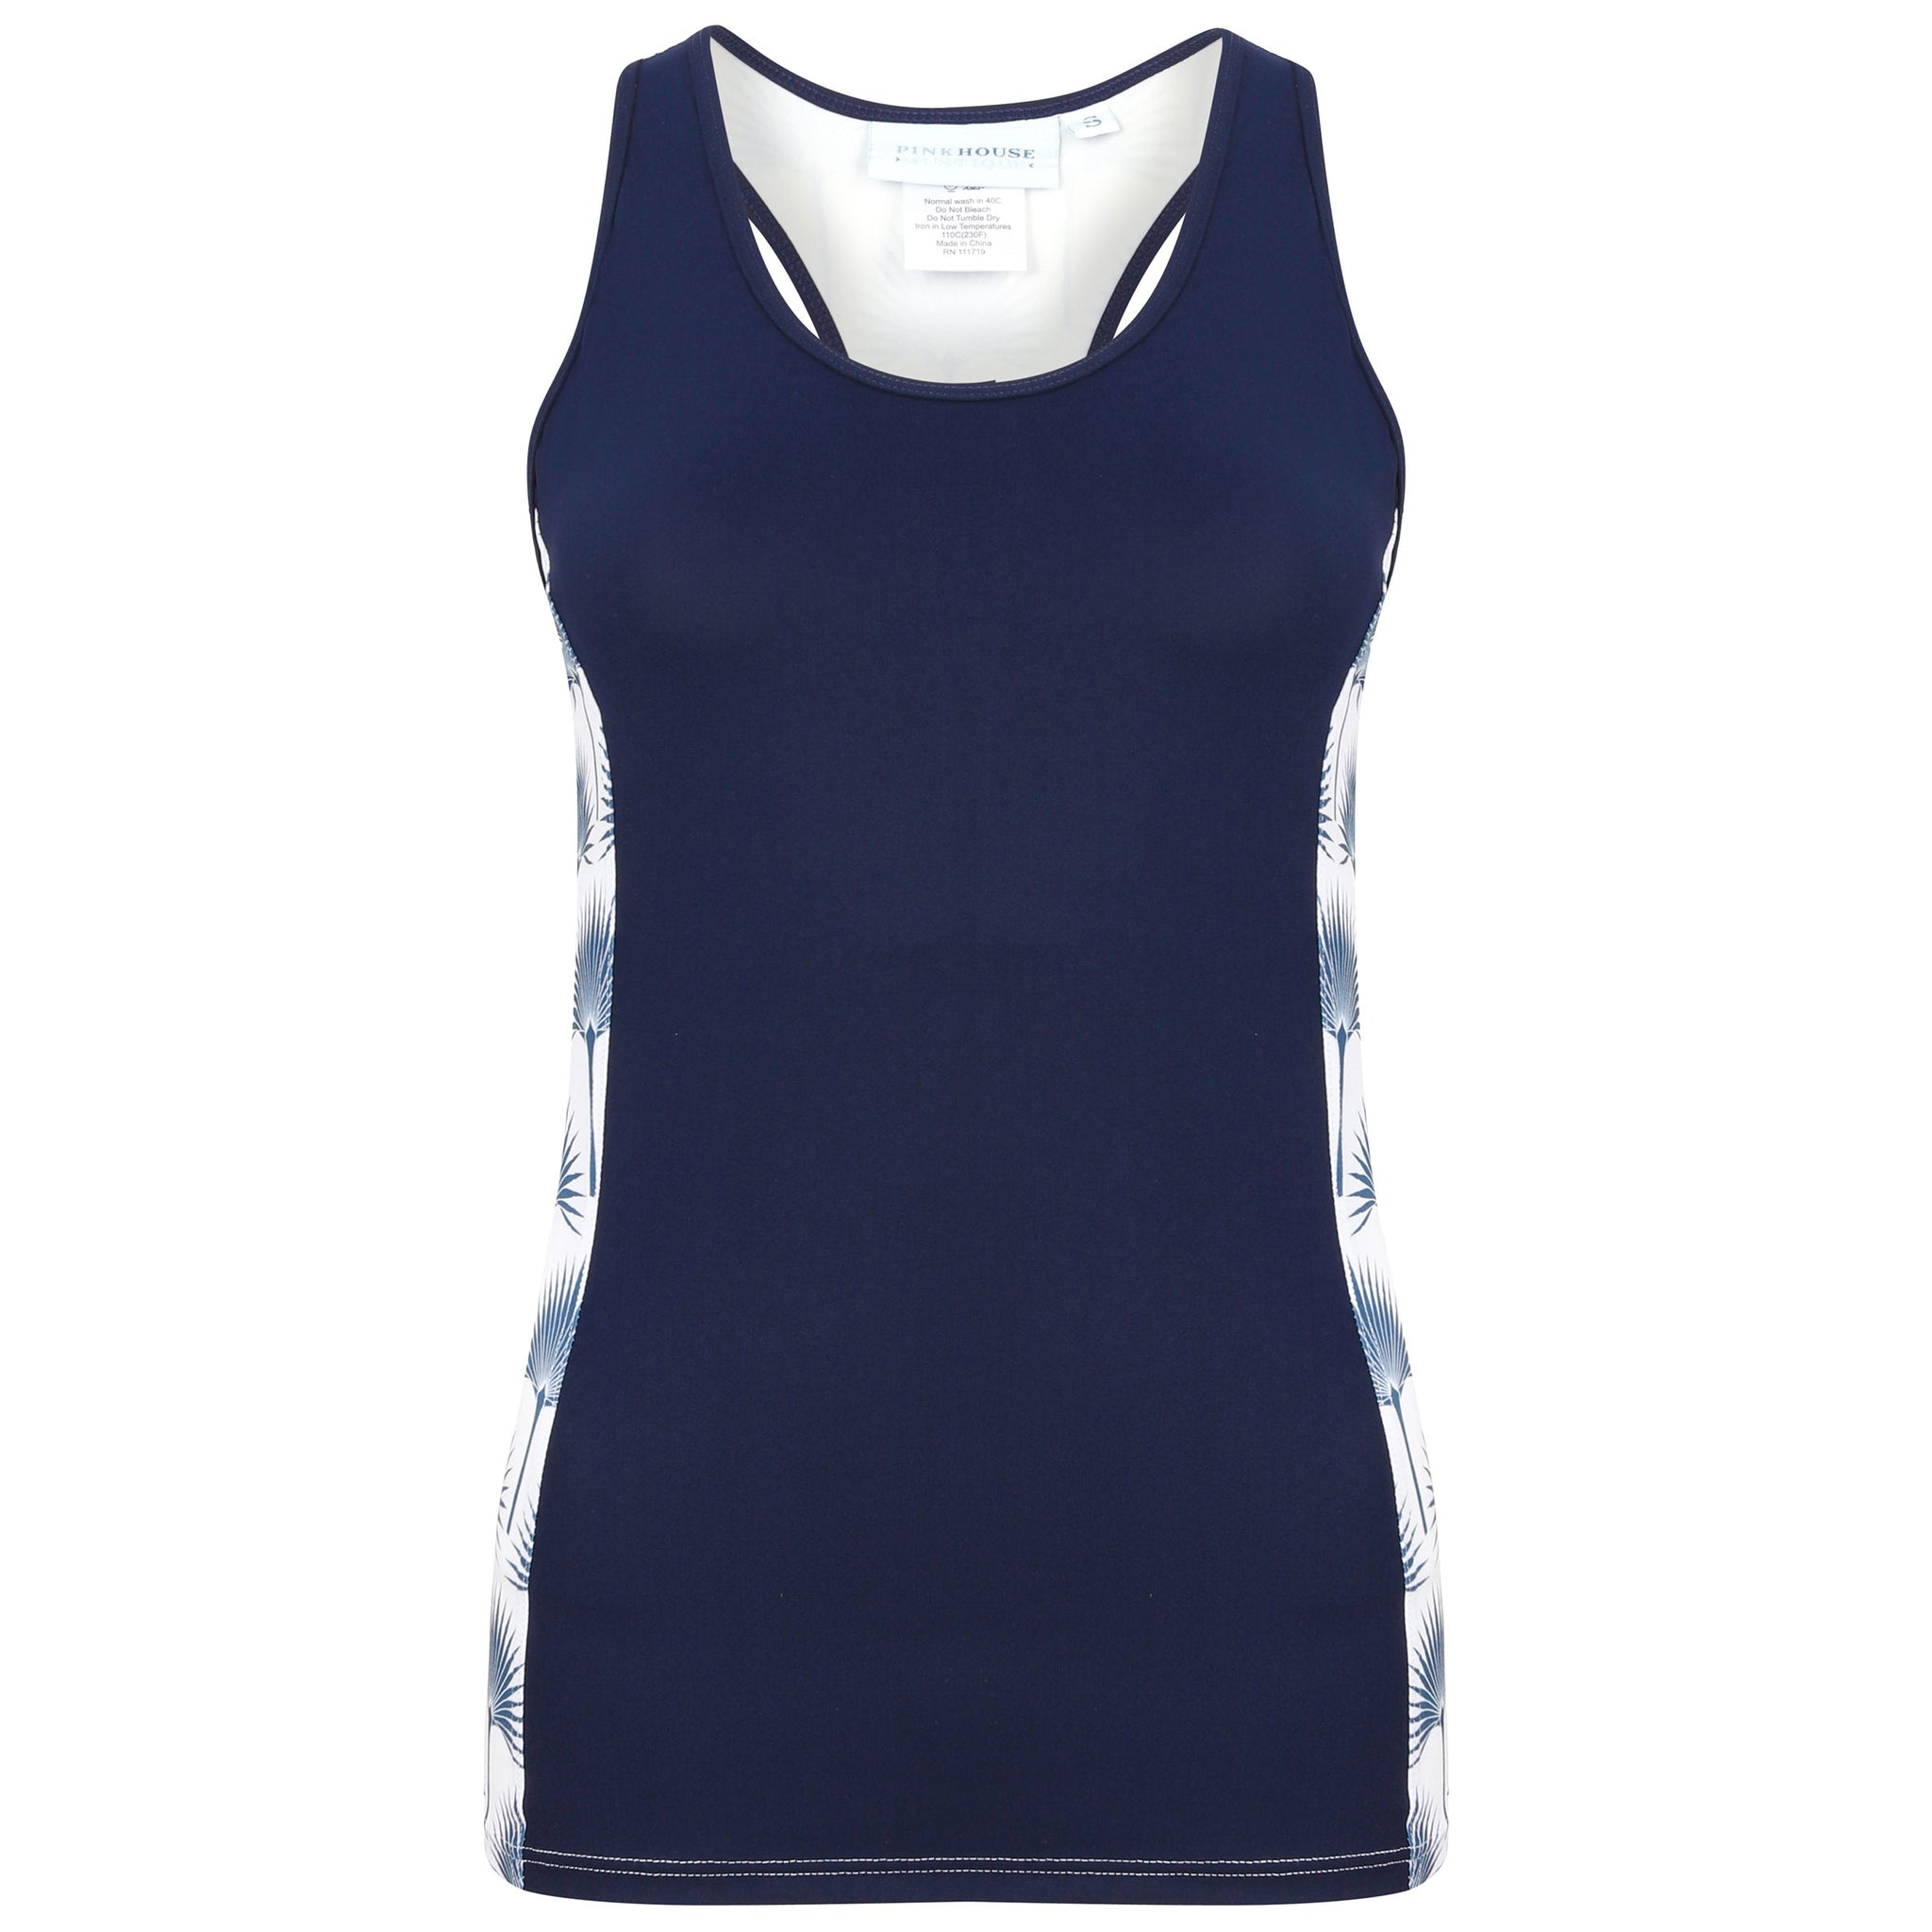 bd18c8b5471b87 Sports Racer Back Top : FAN PALM NAVY designed by Lotty B for Pink House  Mustique